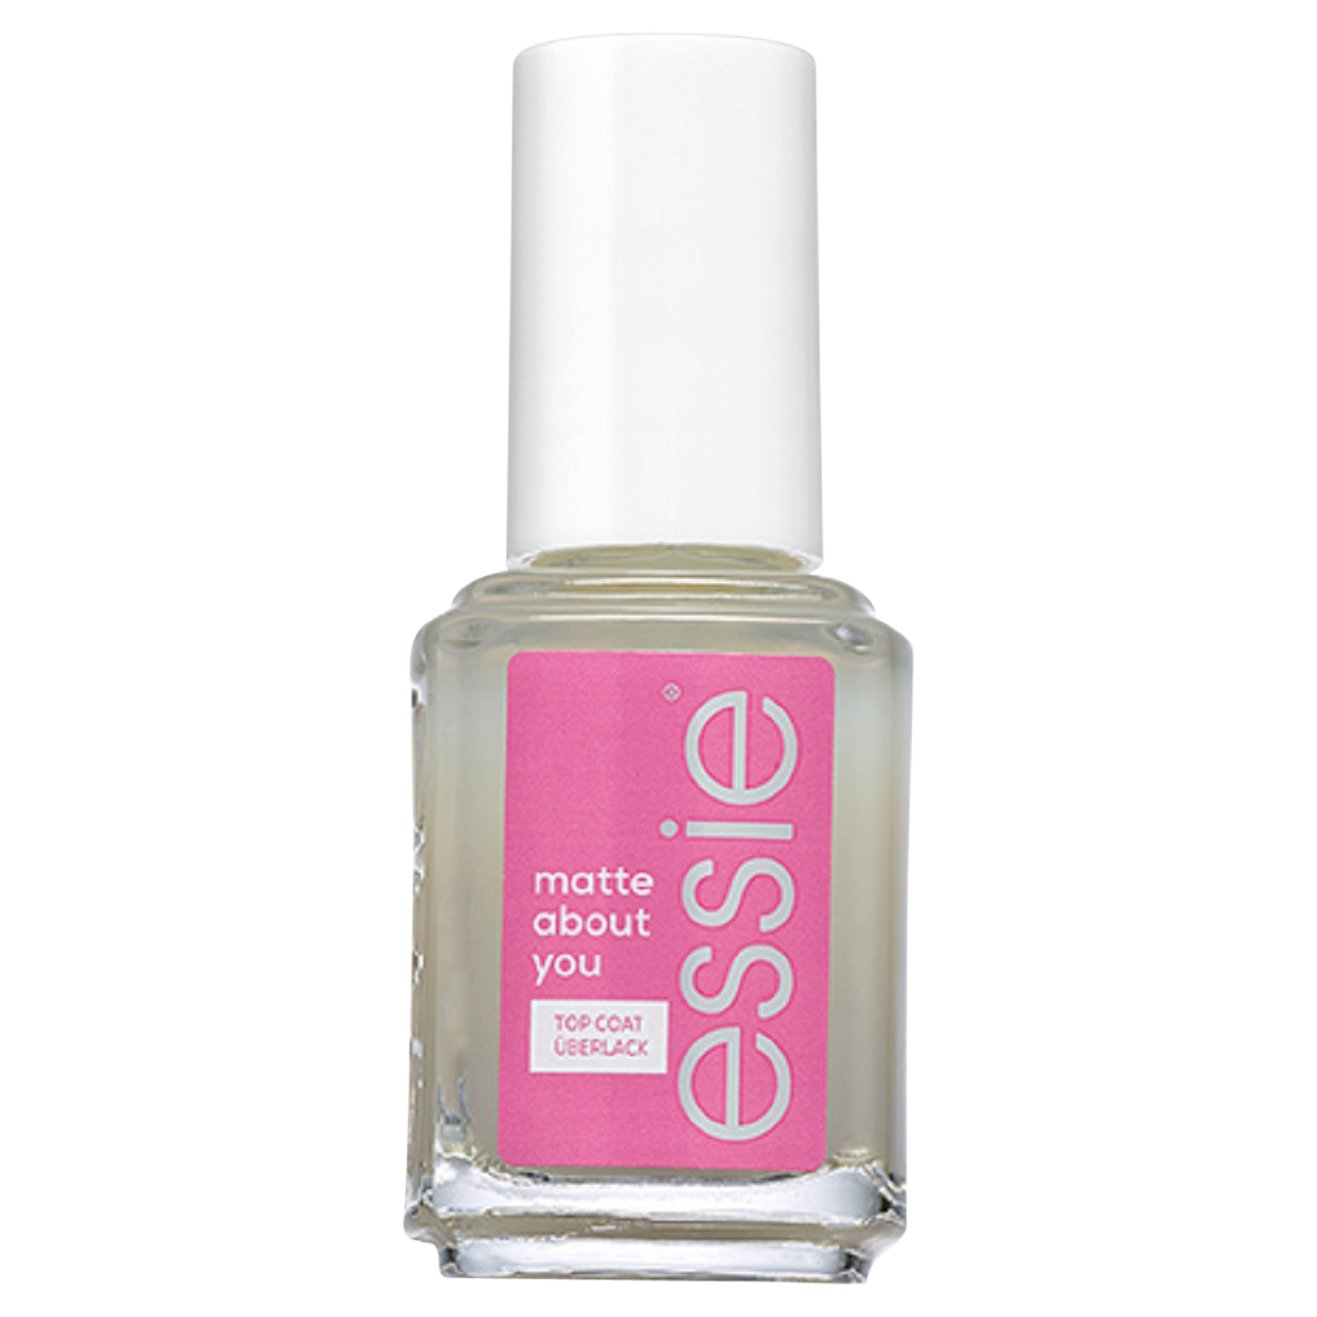 Essie Nail Care Matte About You Top Coat 13.5ml product shot